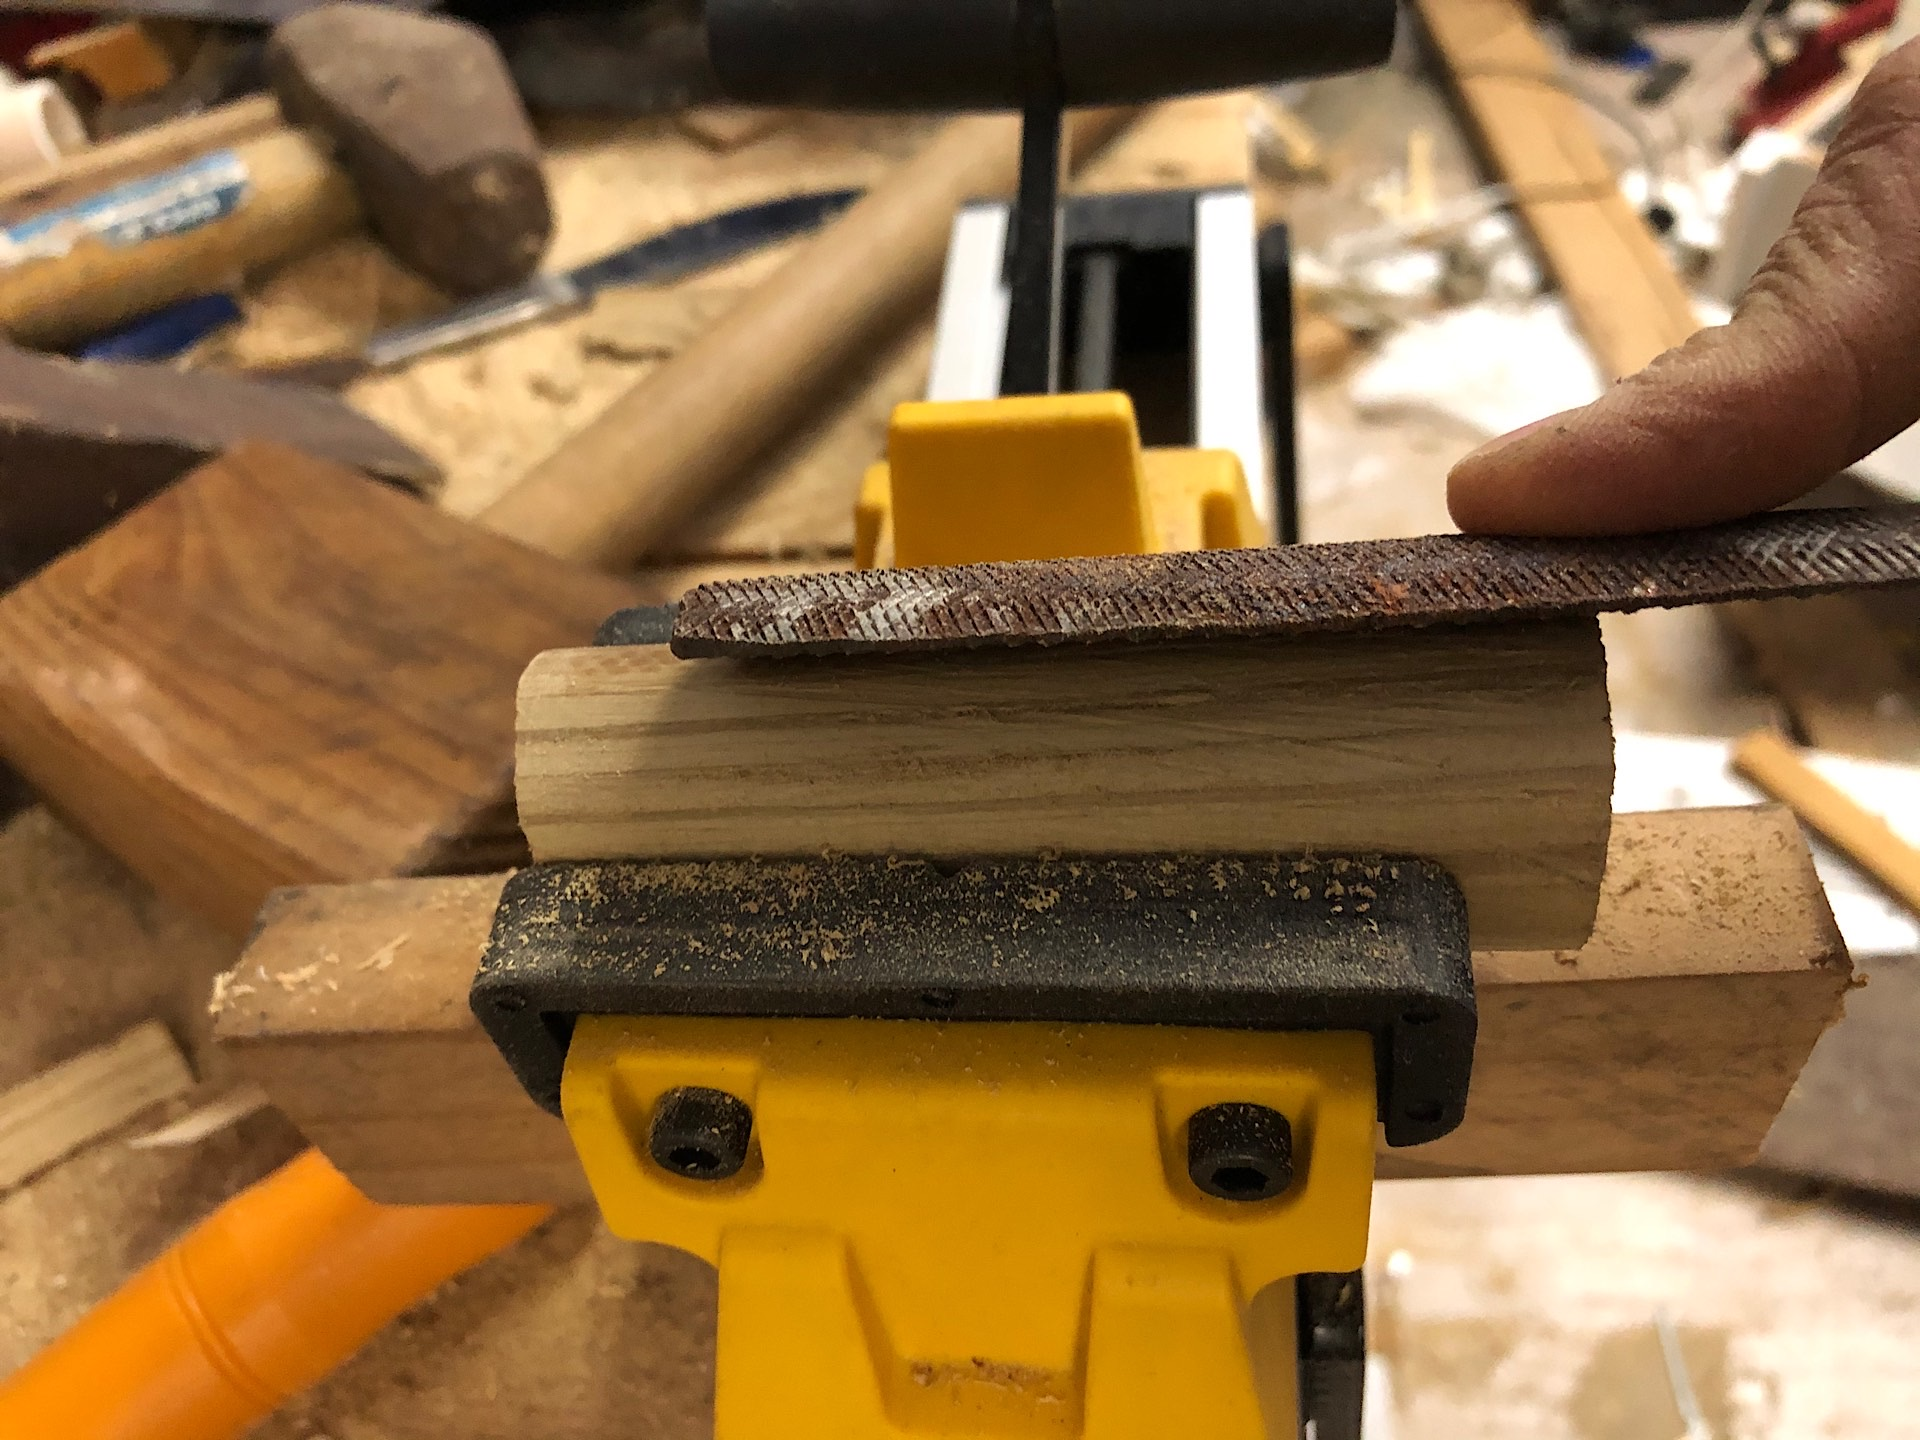 Shaping a knife handle with a file